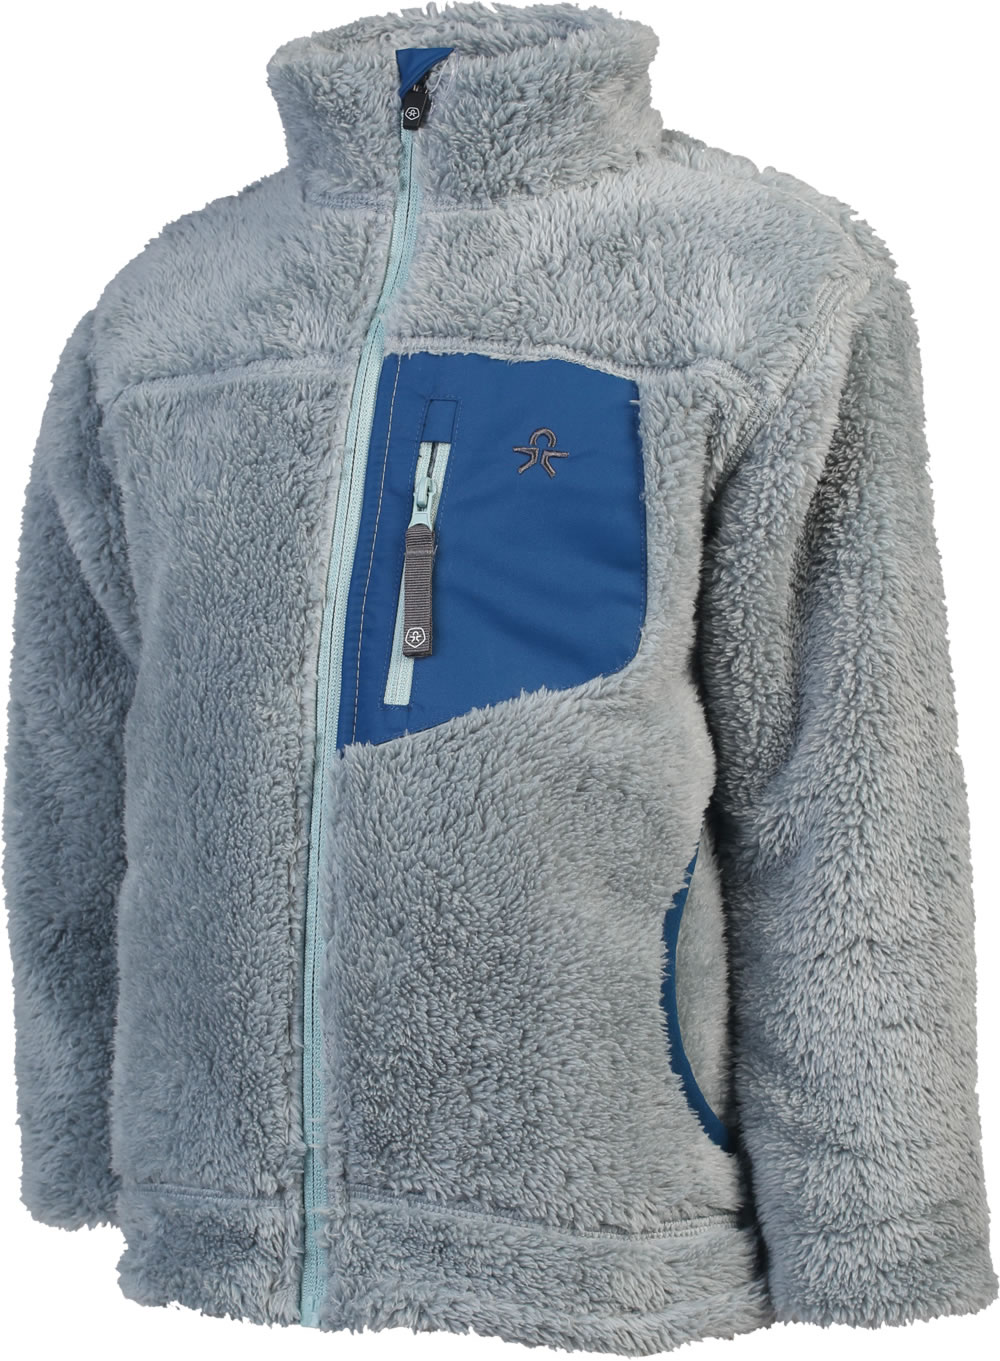 Color Kids Fleece Jacke Gefttert KATIMBO Dusty Blue 103733 0146